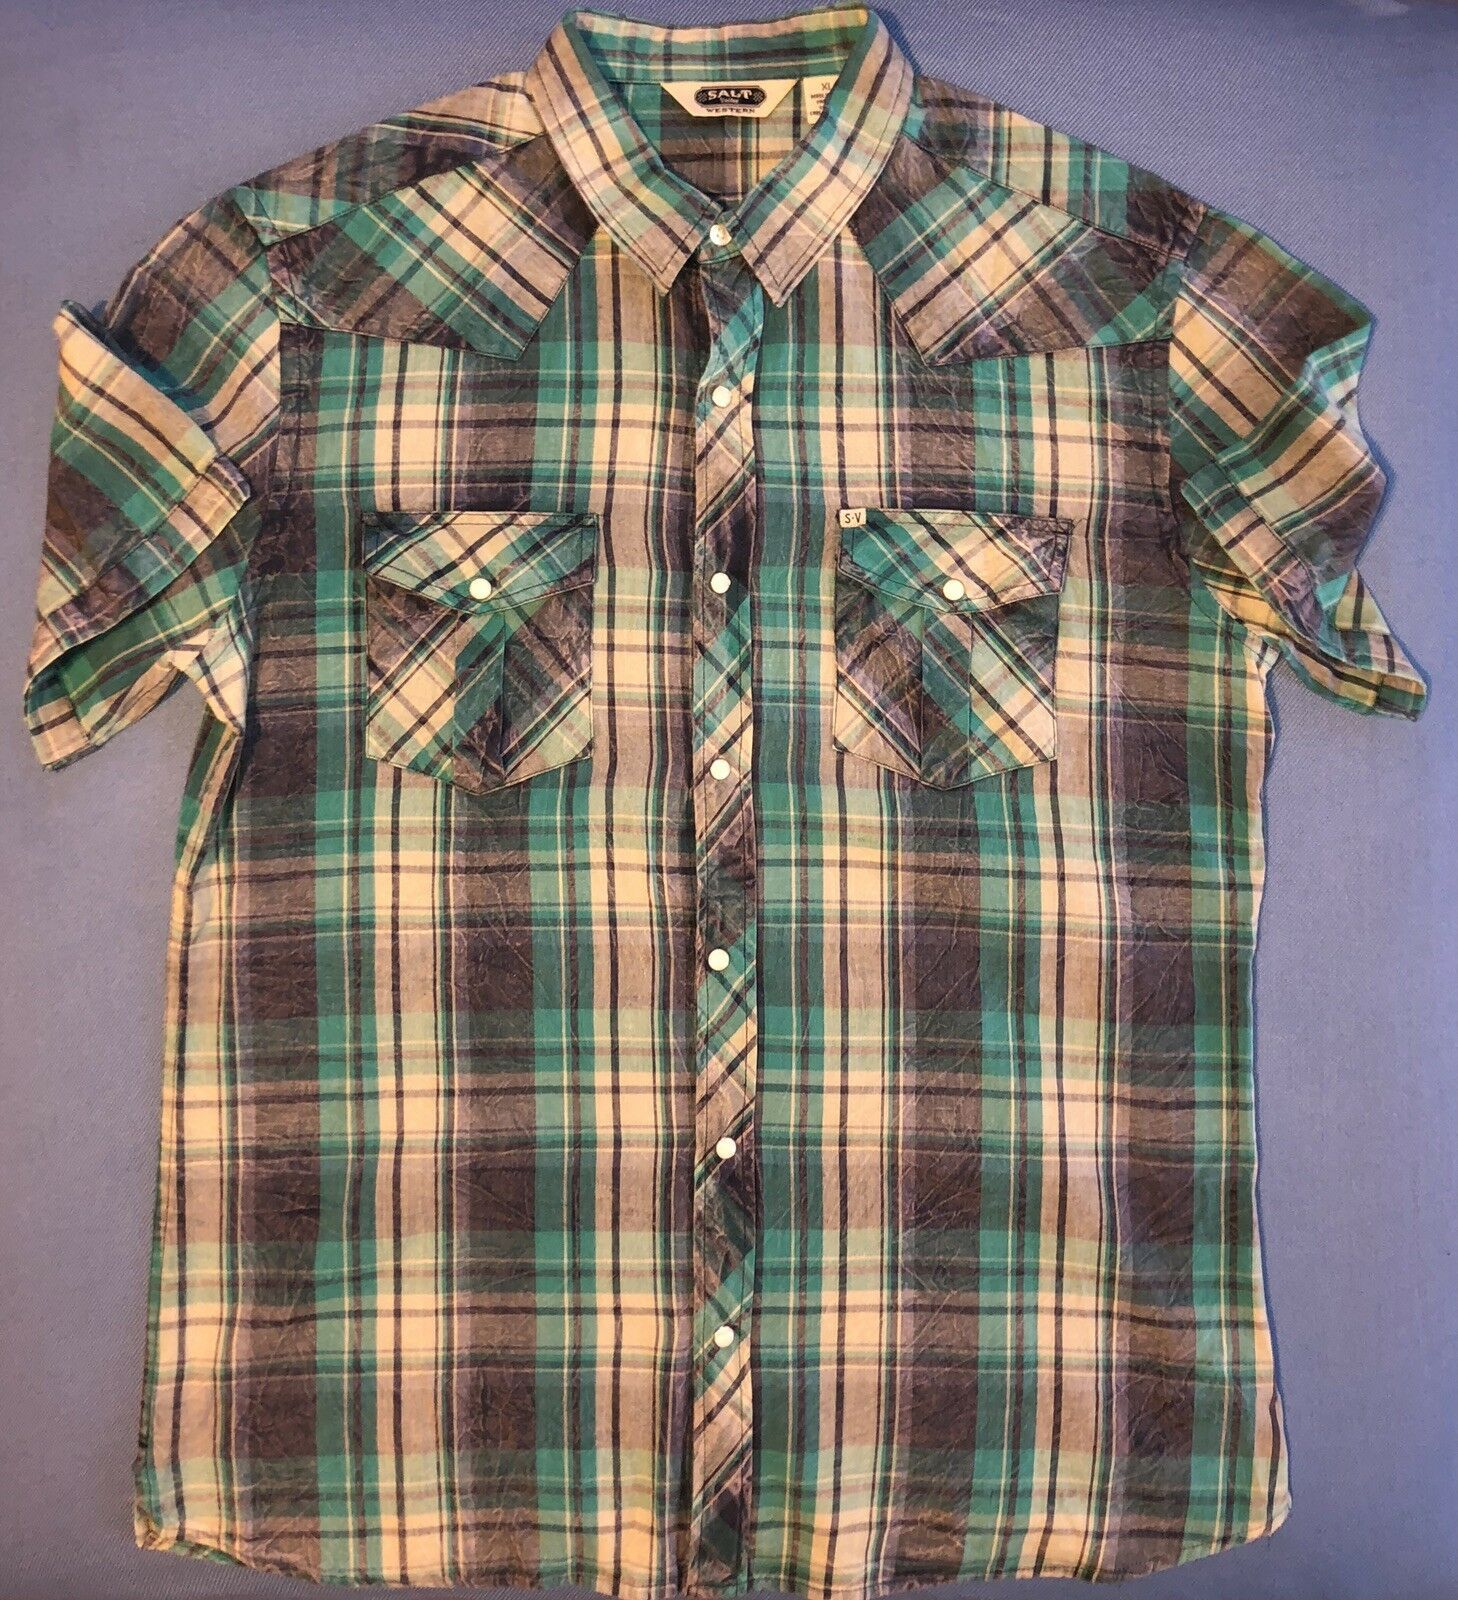 Salt Valley Western Plaid Pearl Snap Short Sleeve Shirt Men's XLarge